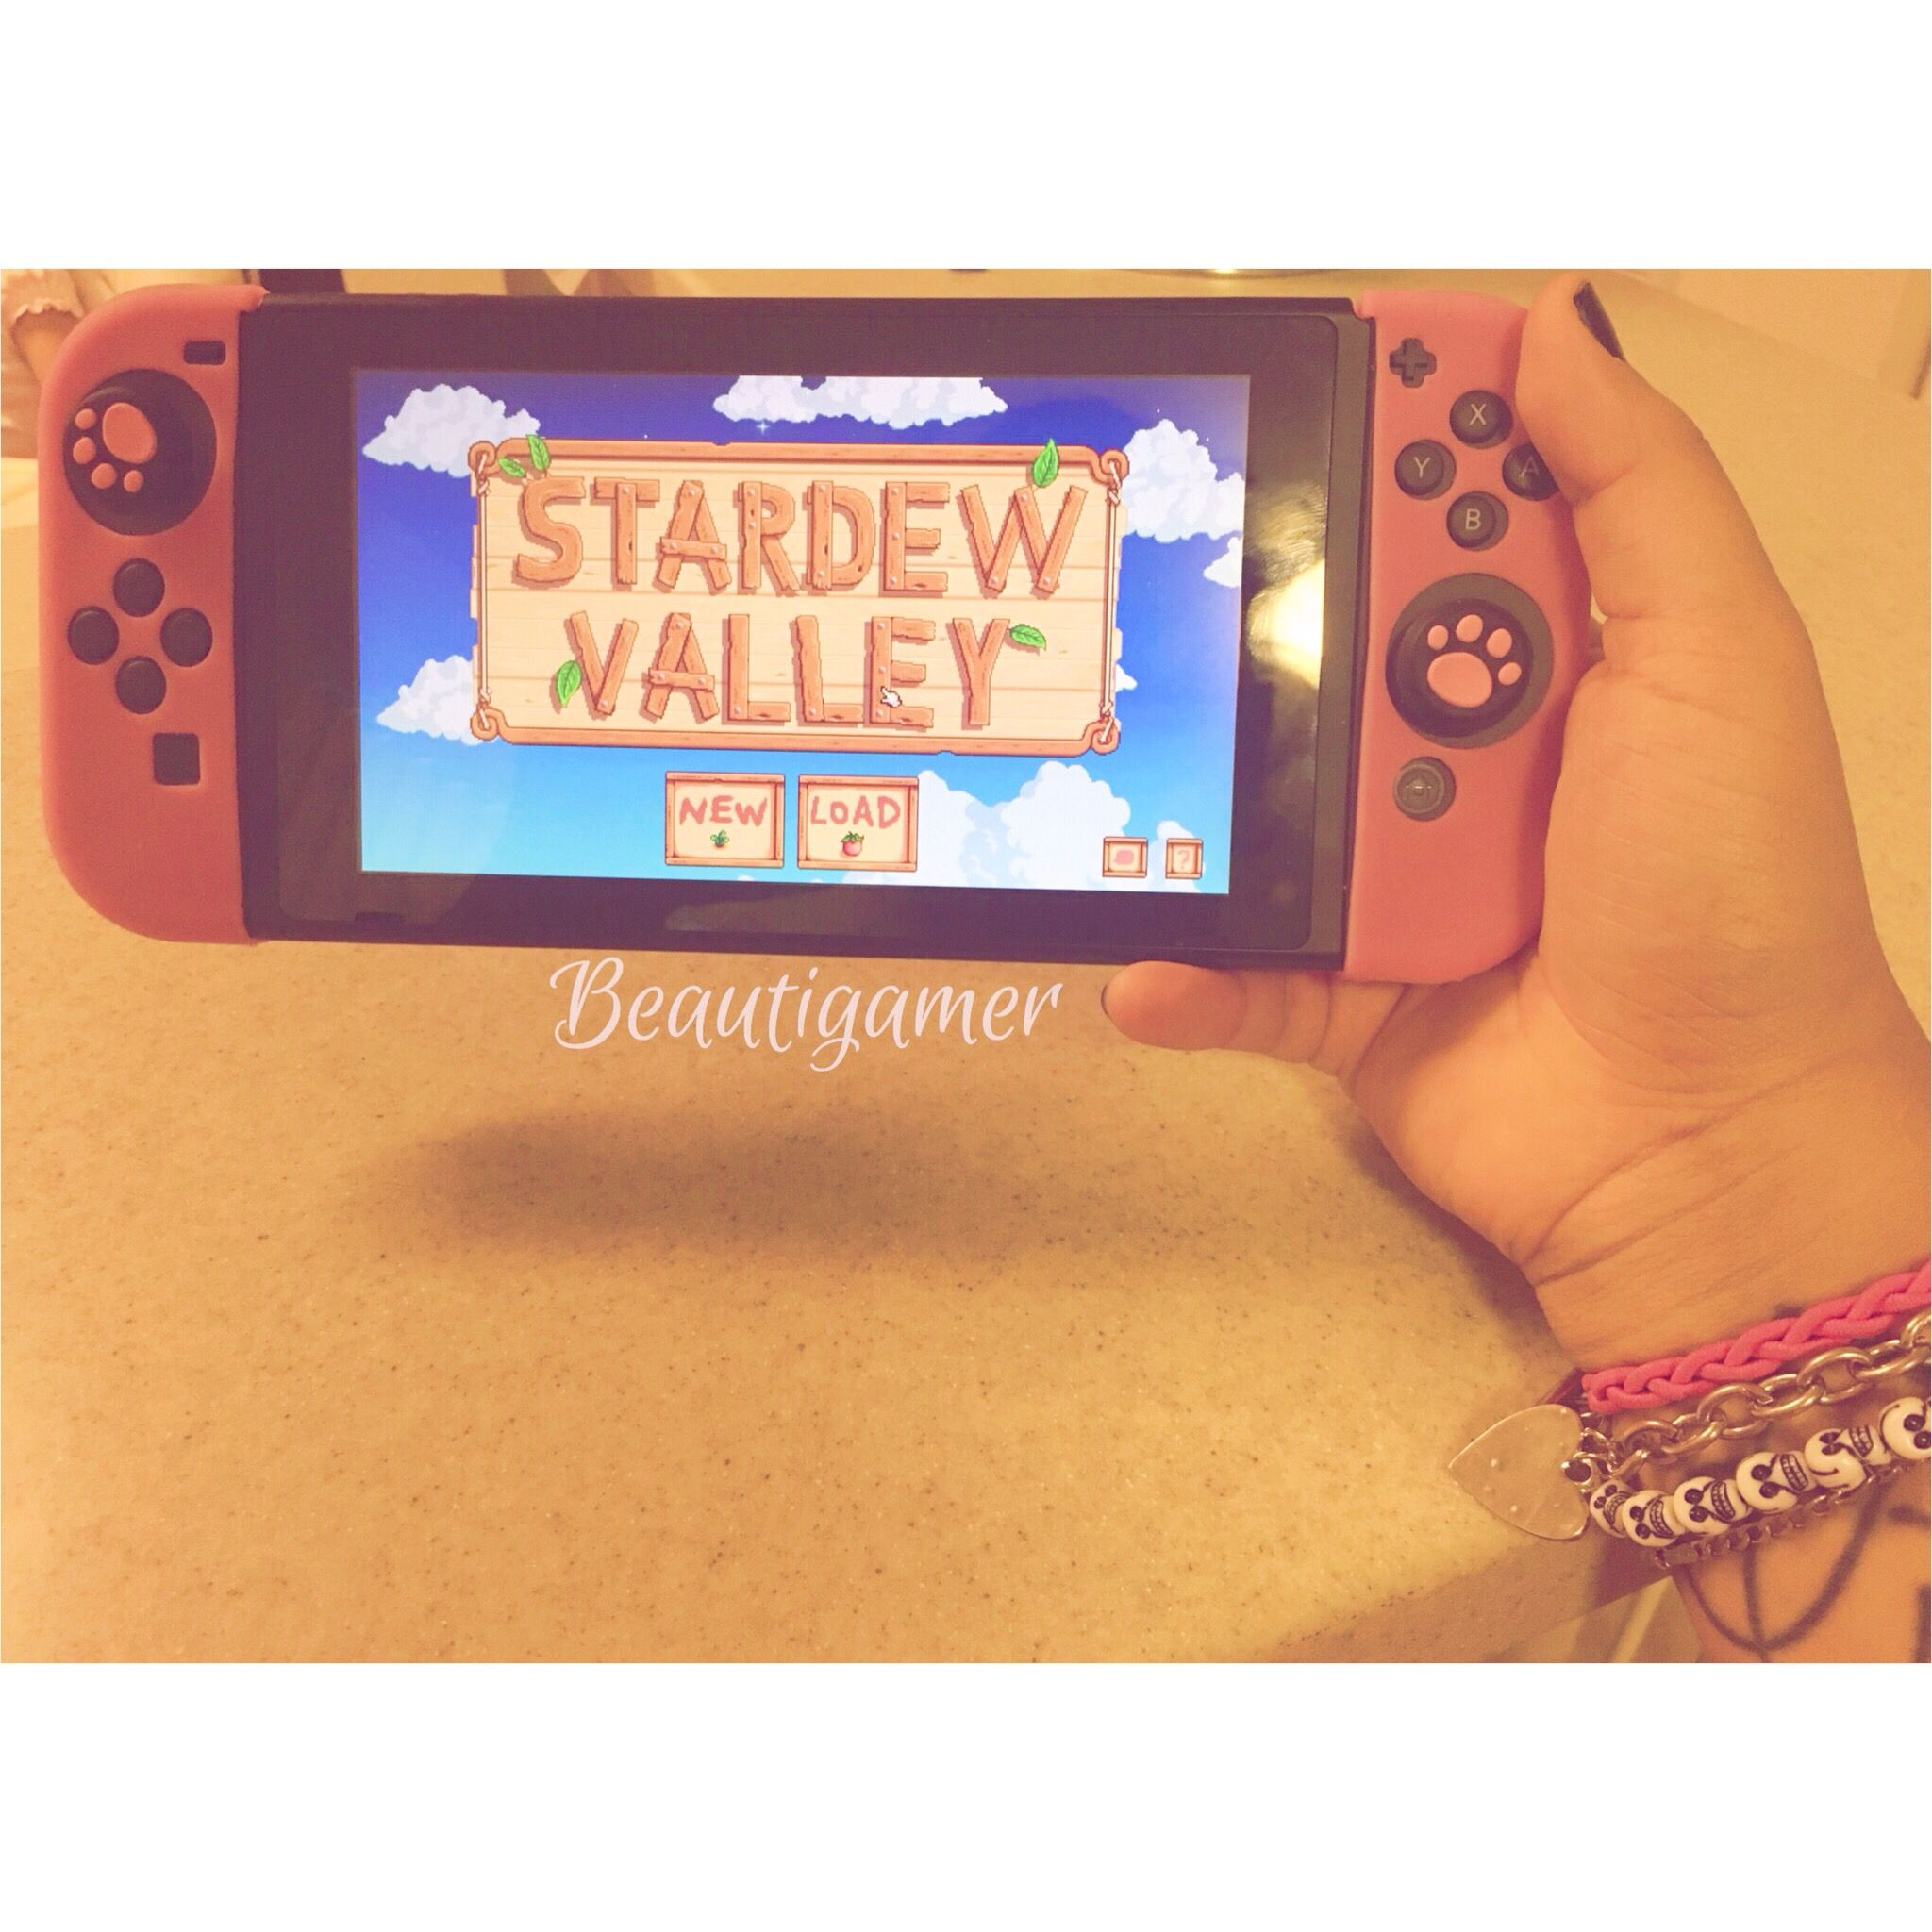 ♡ ☆ STARDEW VALLEY ☆ ♡ Good morning everyone! Today I'll